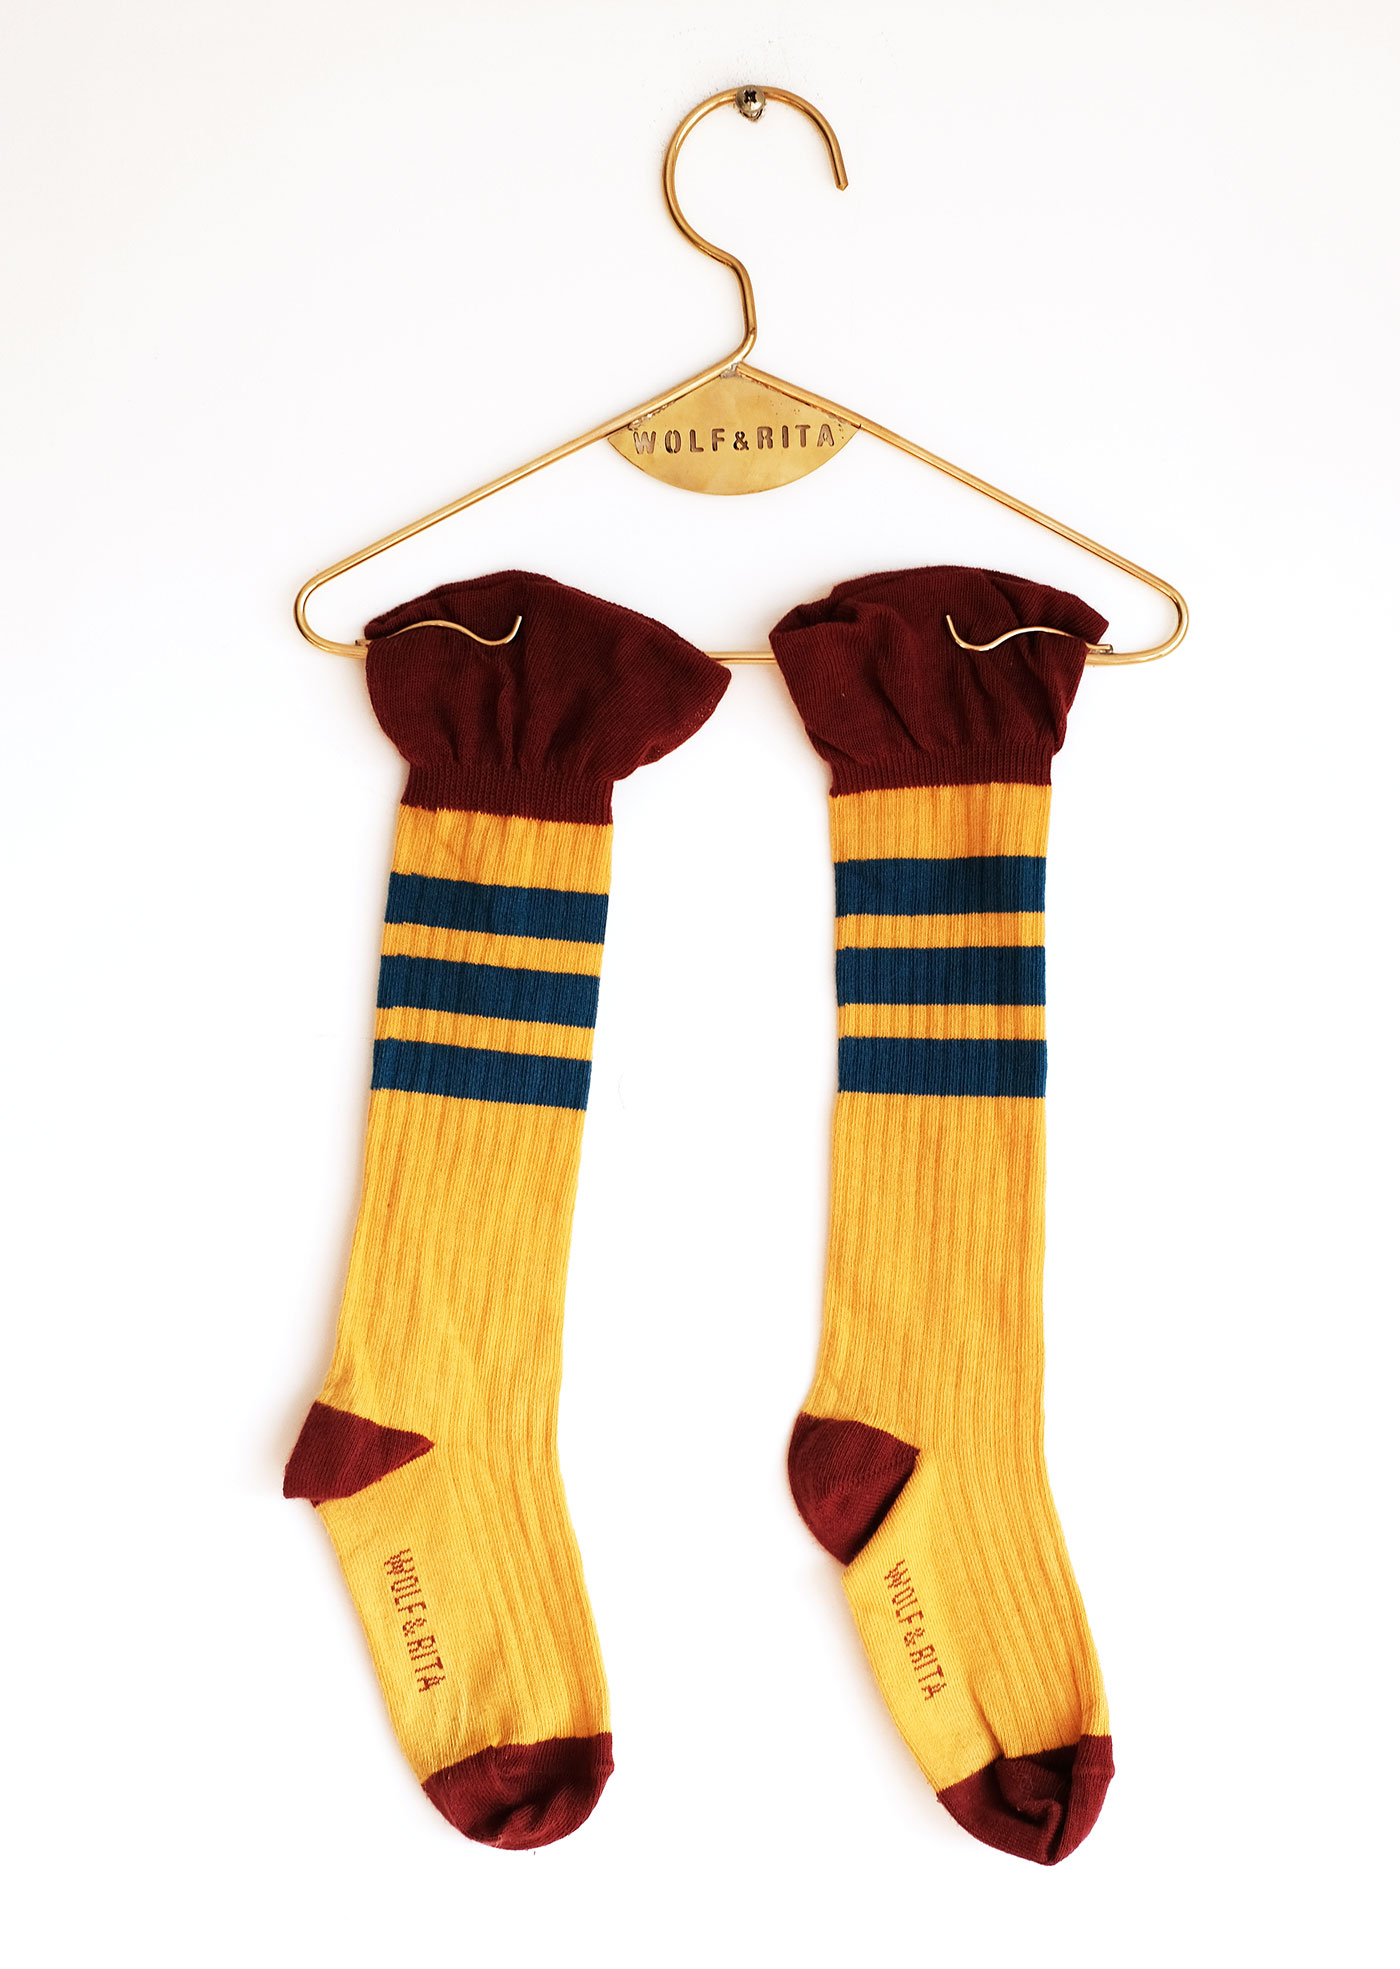 Wolf & Rita Yellow - Frills Yellow Socks - Clothing